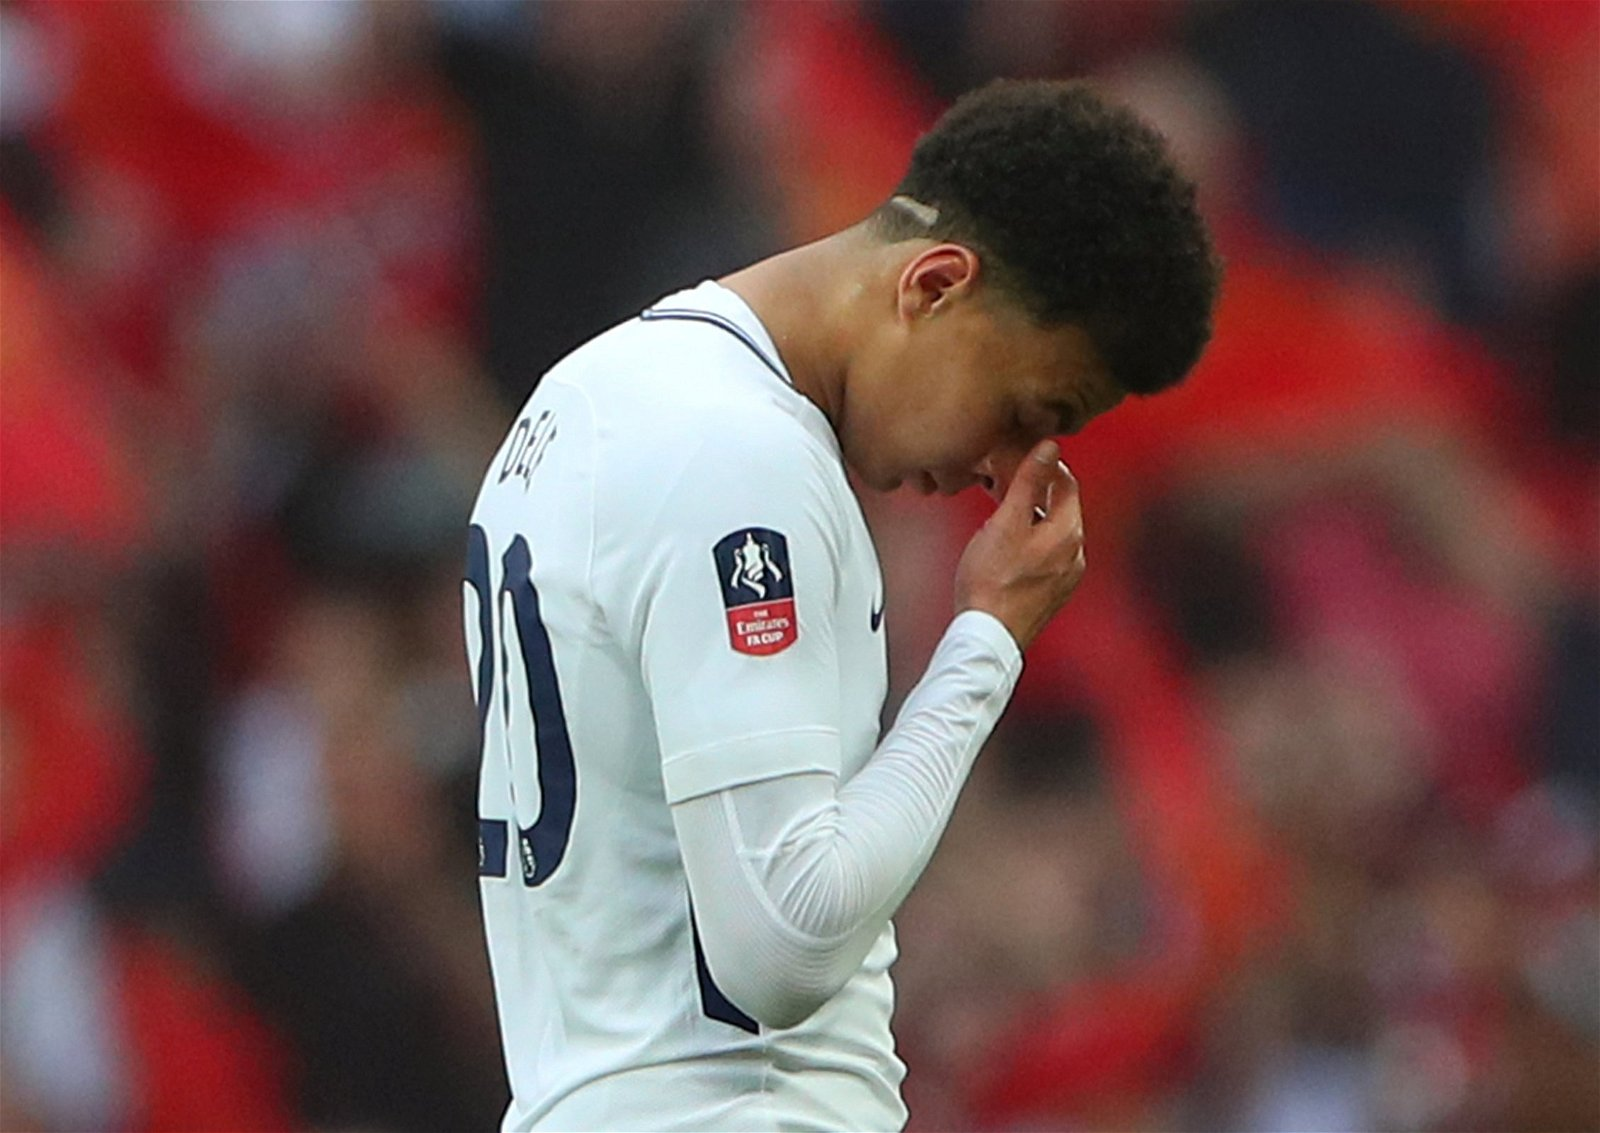 Dele Alli looks dejected following Tottenham Hotspur's FA Cup semi-final defeat to Manchester United